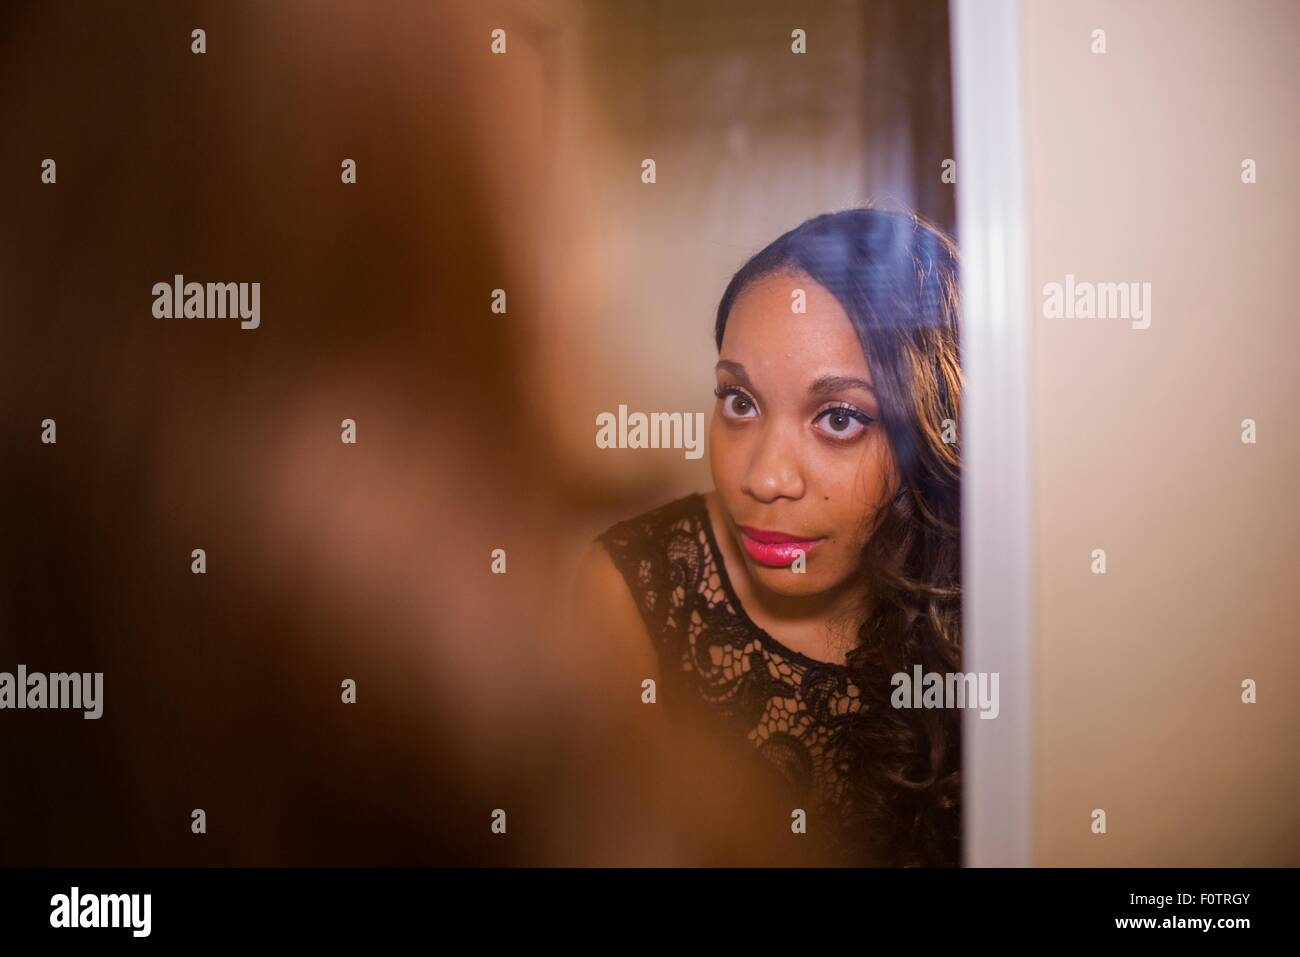 Young woman looking in wall mirror whist getting ready - Stock Image